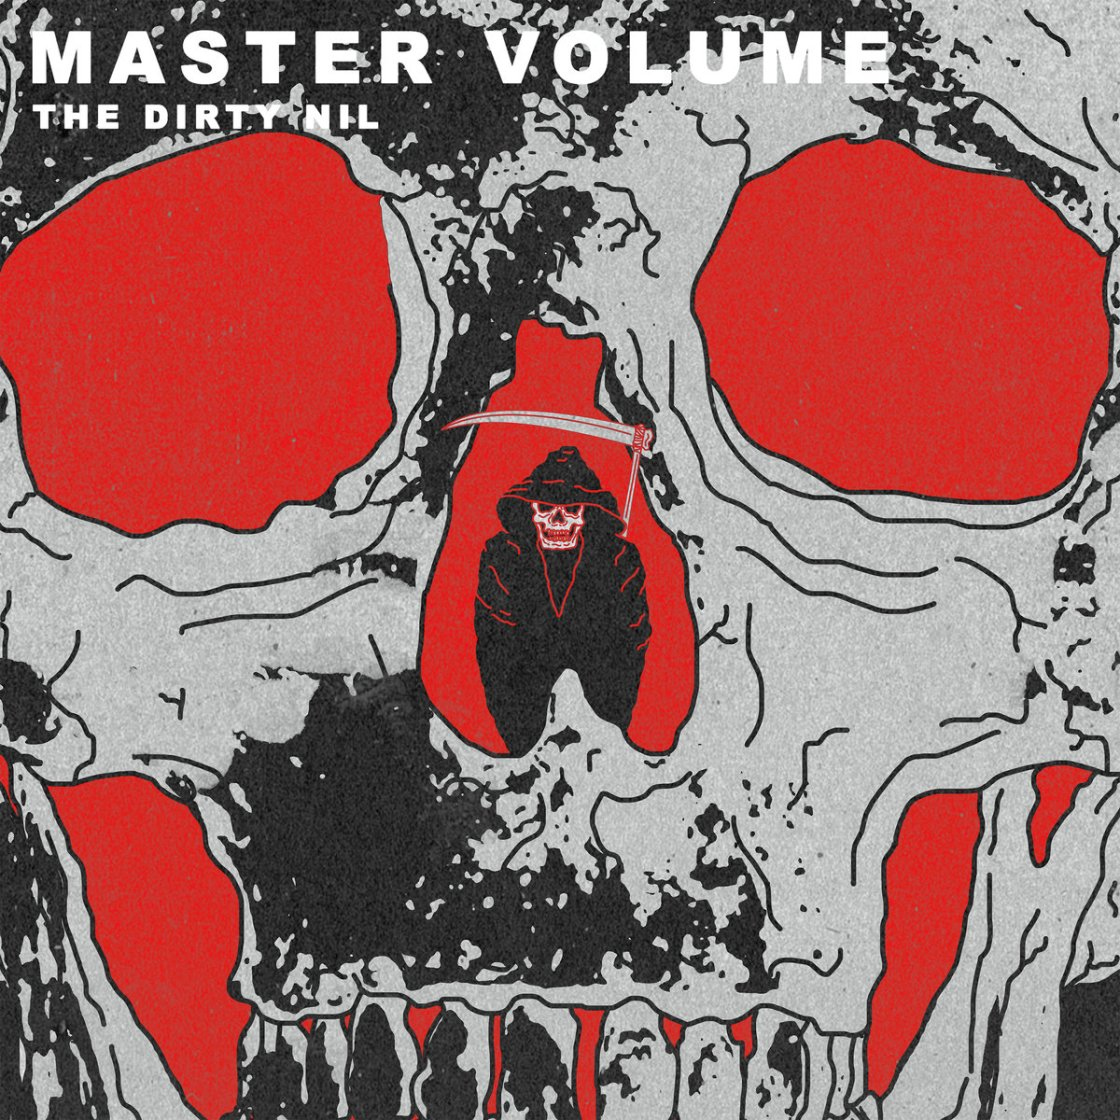 The Dirty Nil Master Volume Review